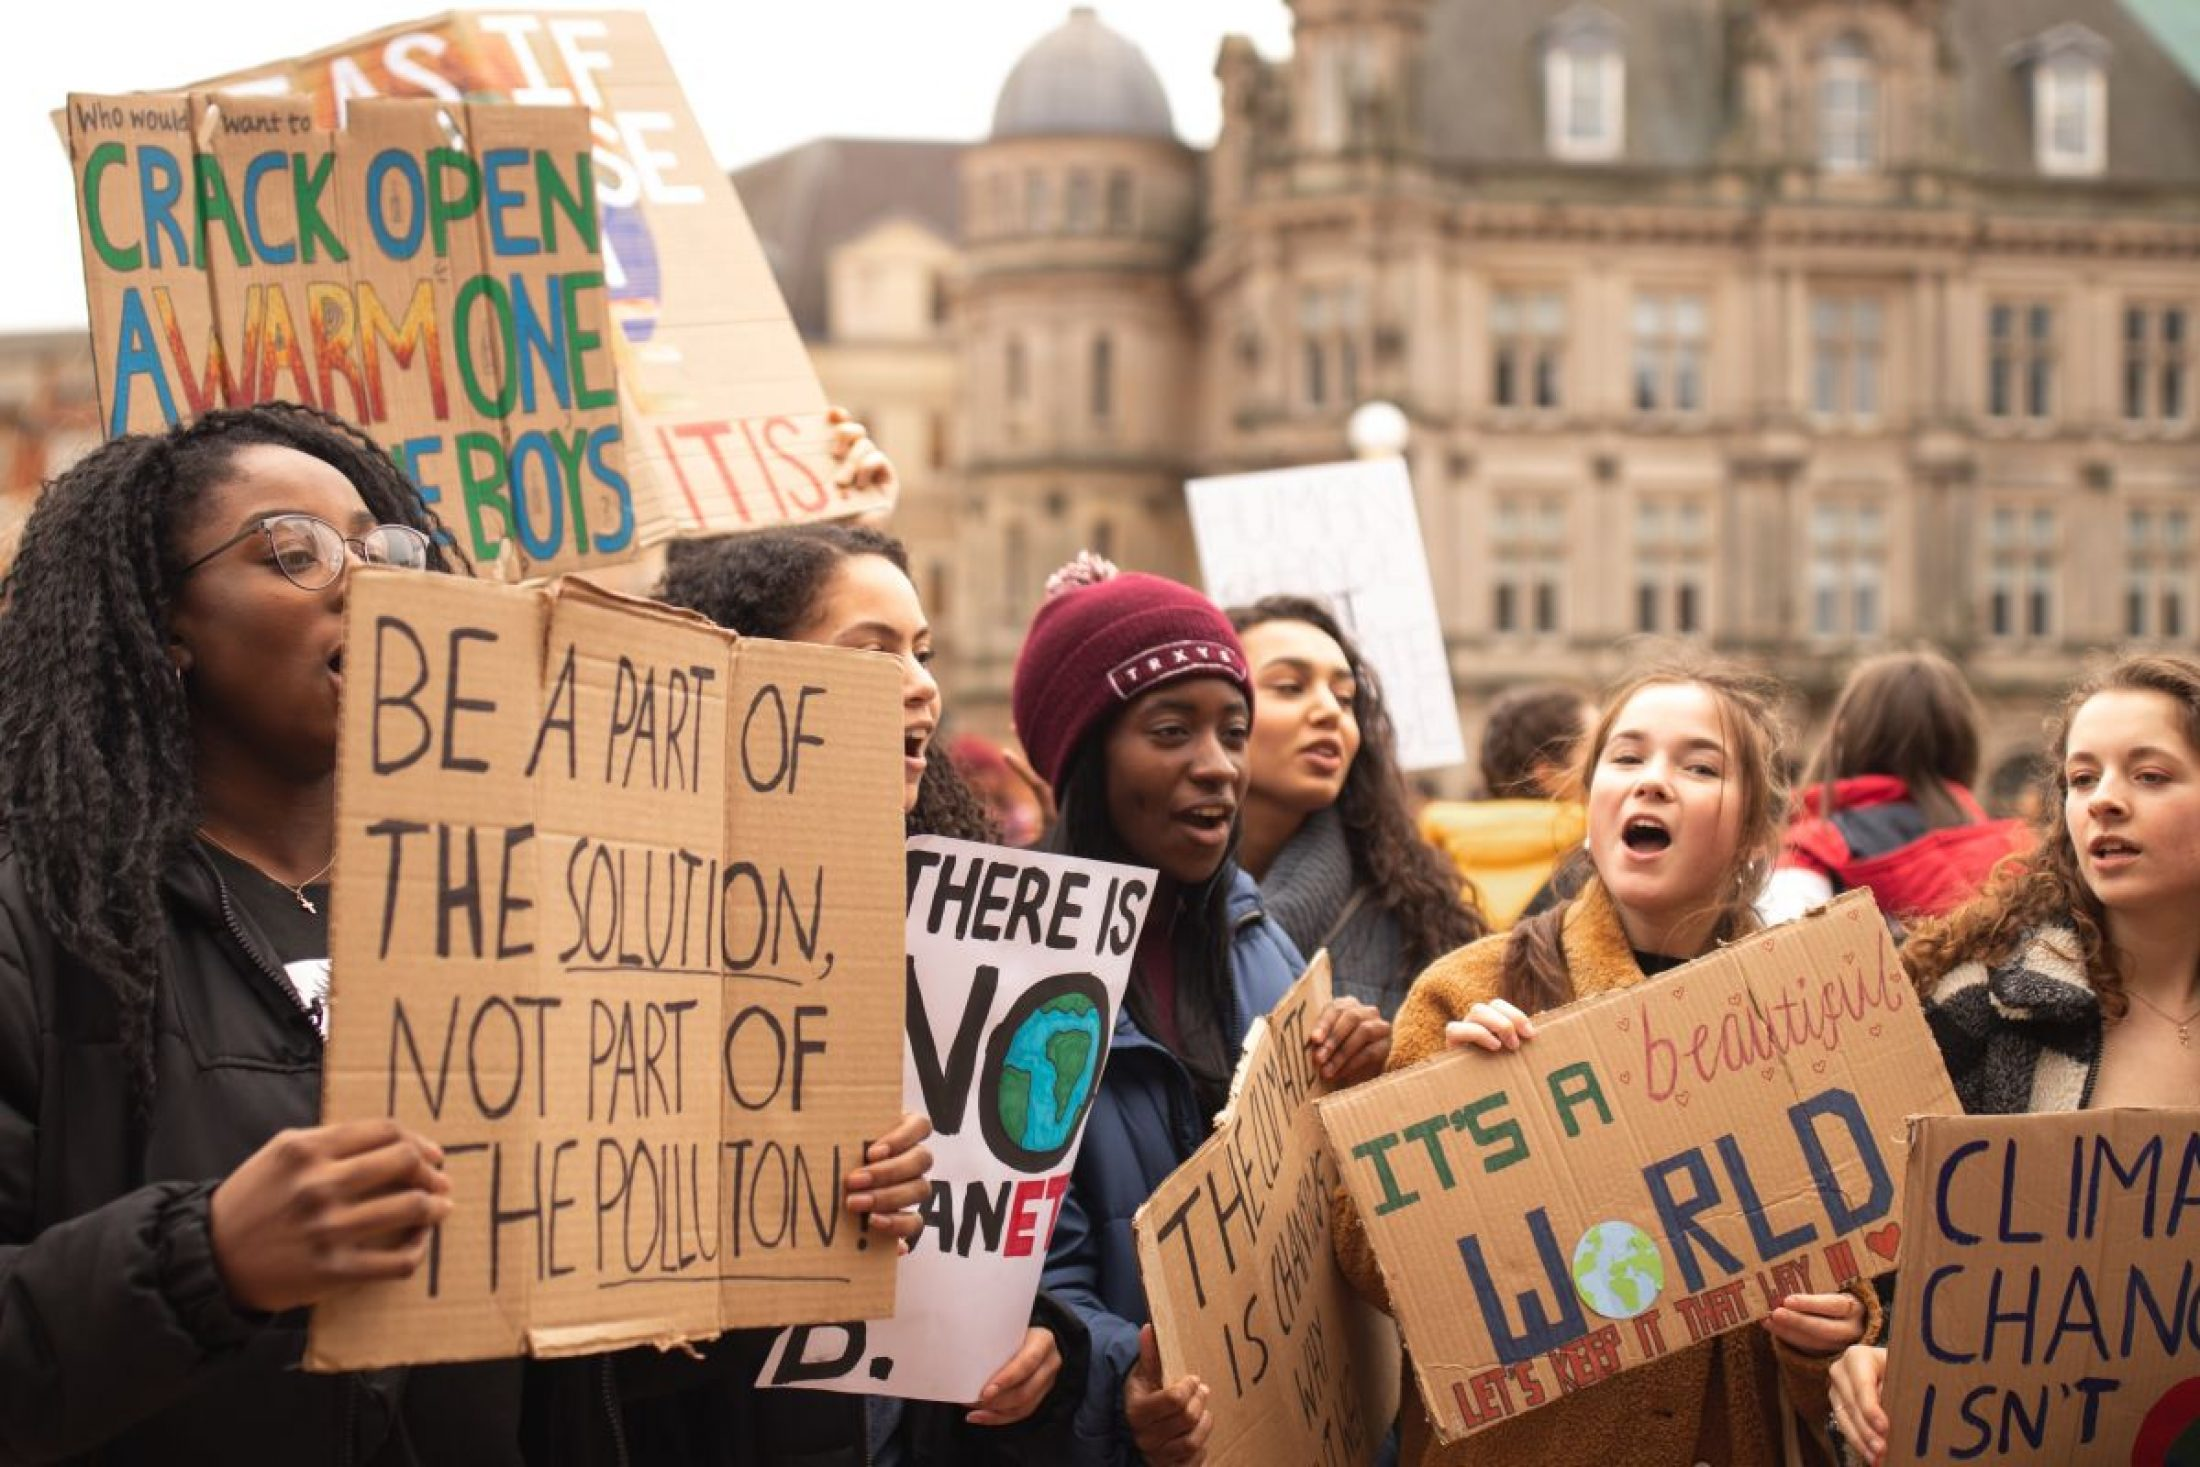 Schoolchildren in England and Scotland have drafted their own emergency climate bill